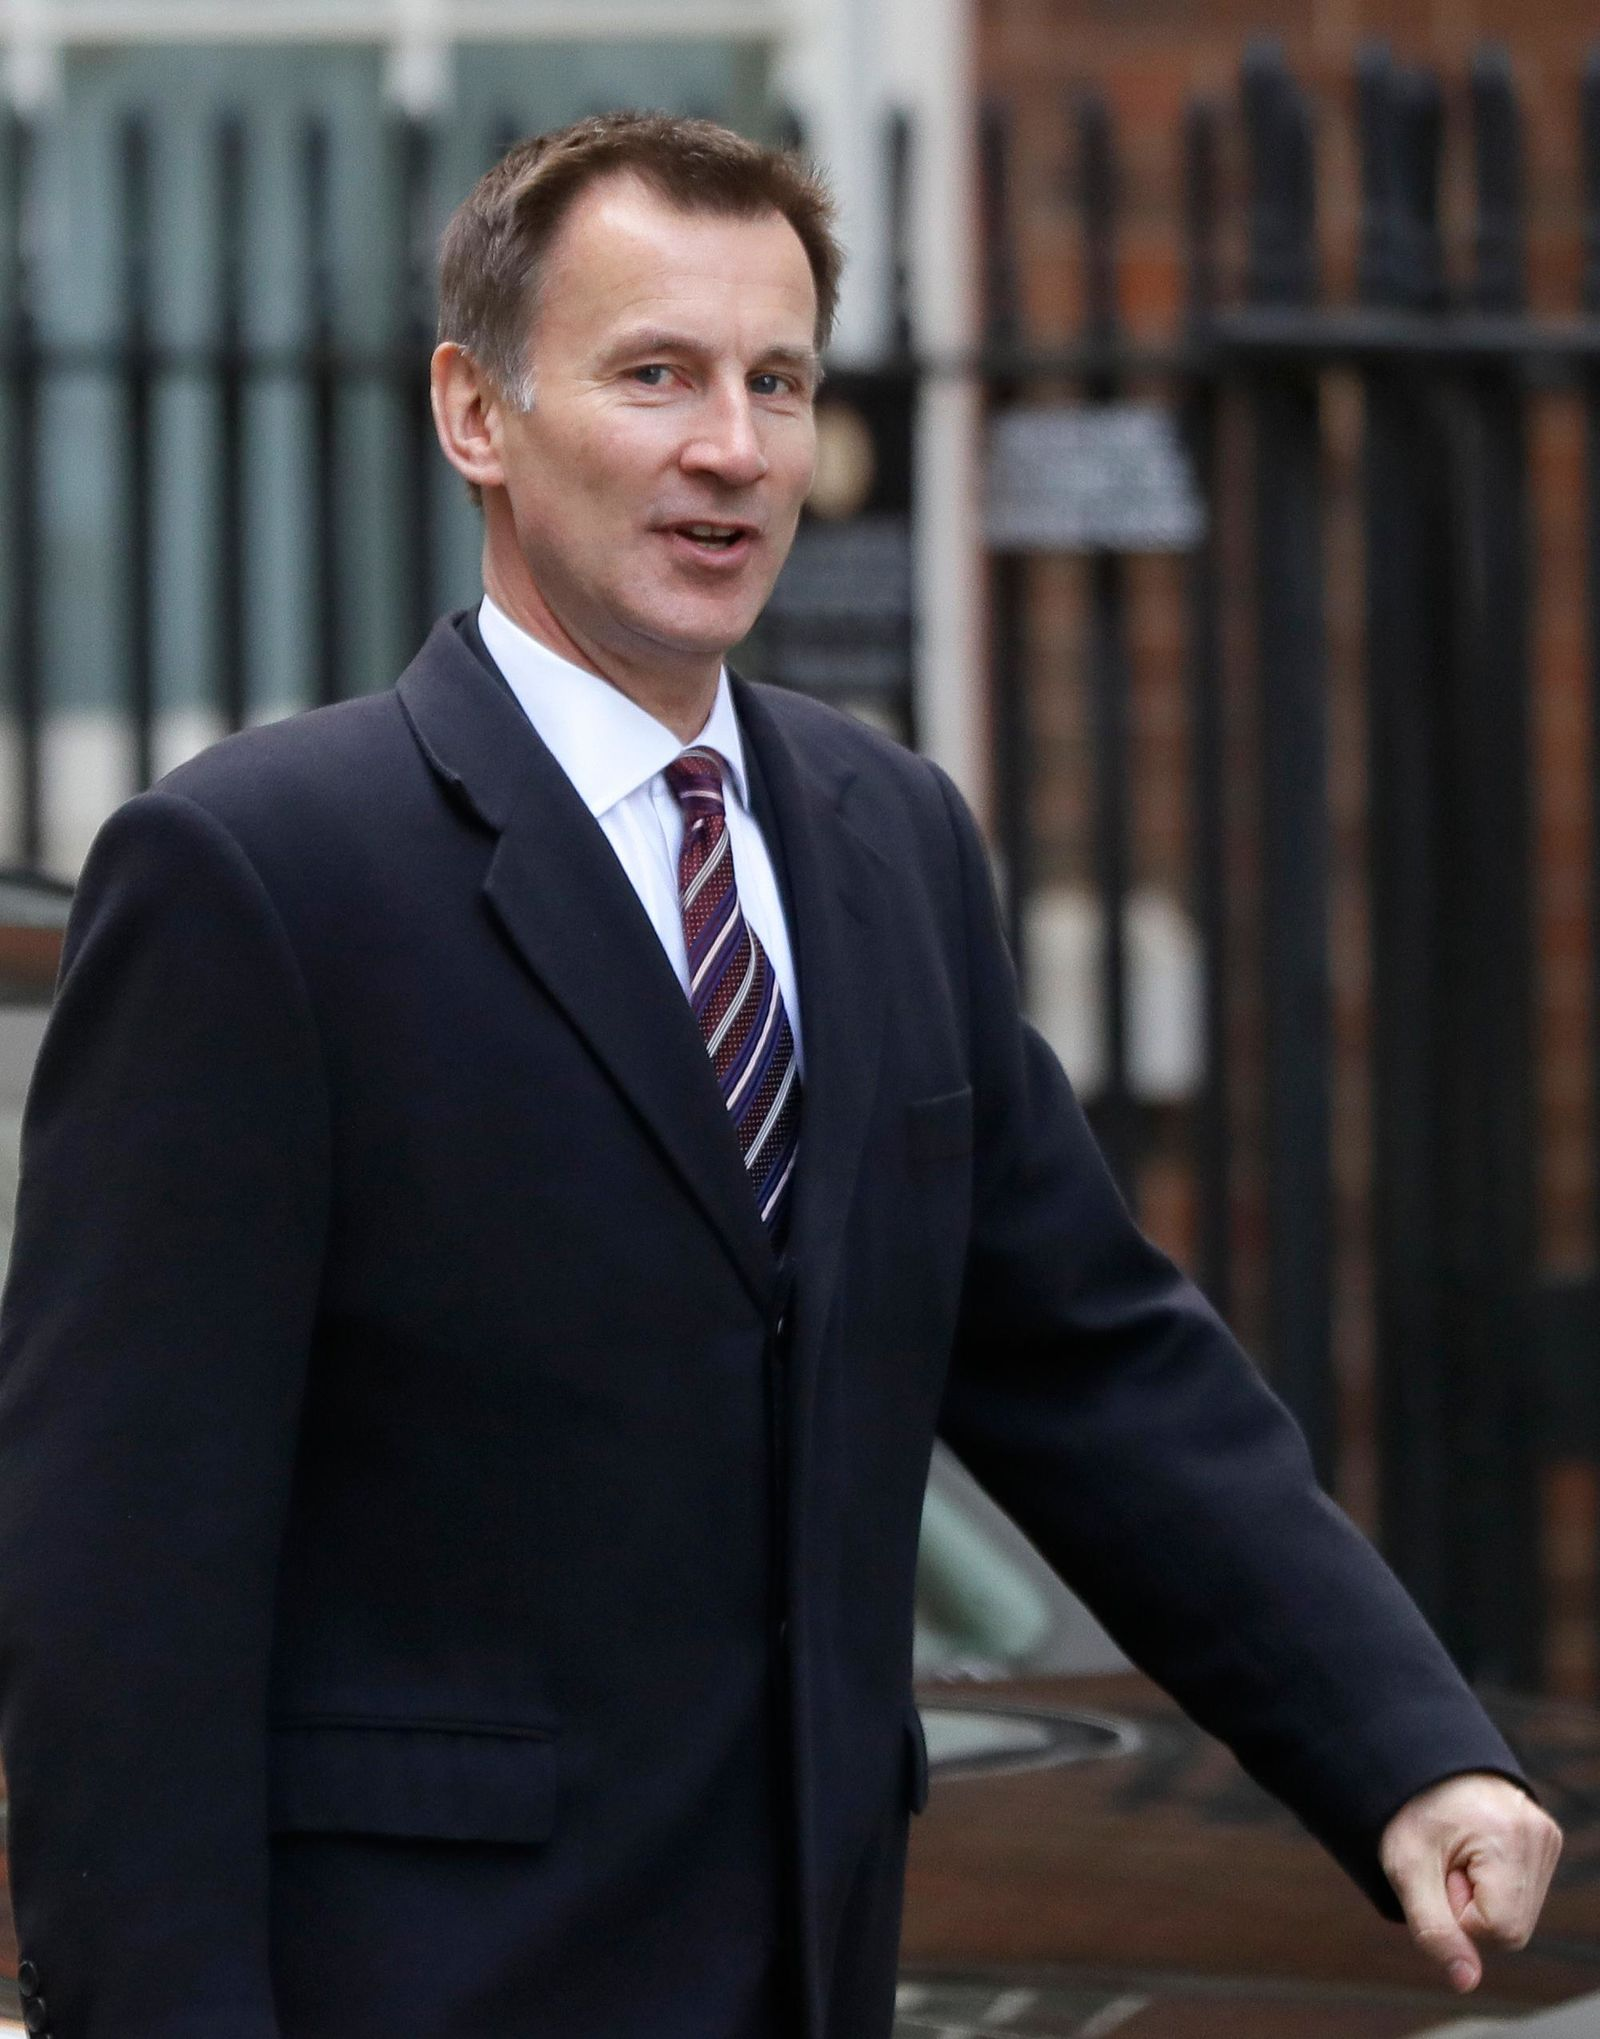 Britain's Foreign Secretary Jeremy Hunt arrives for a Cabinet meeting at Downing Street in London, Monday, March 25, 2019. (AP Photo/Kirsty Wigglesworth)